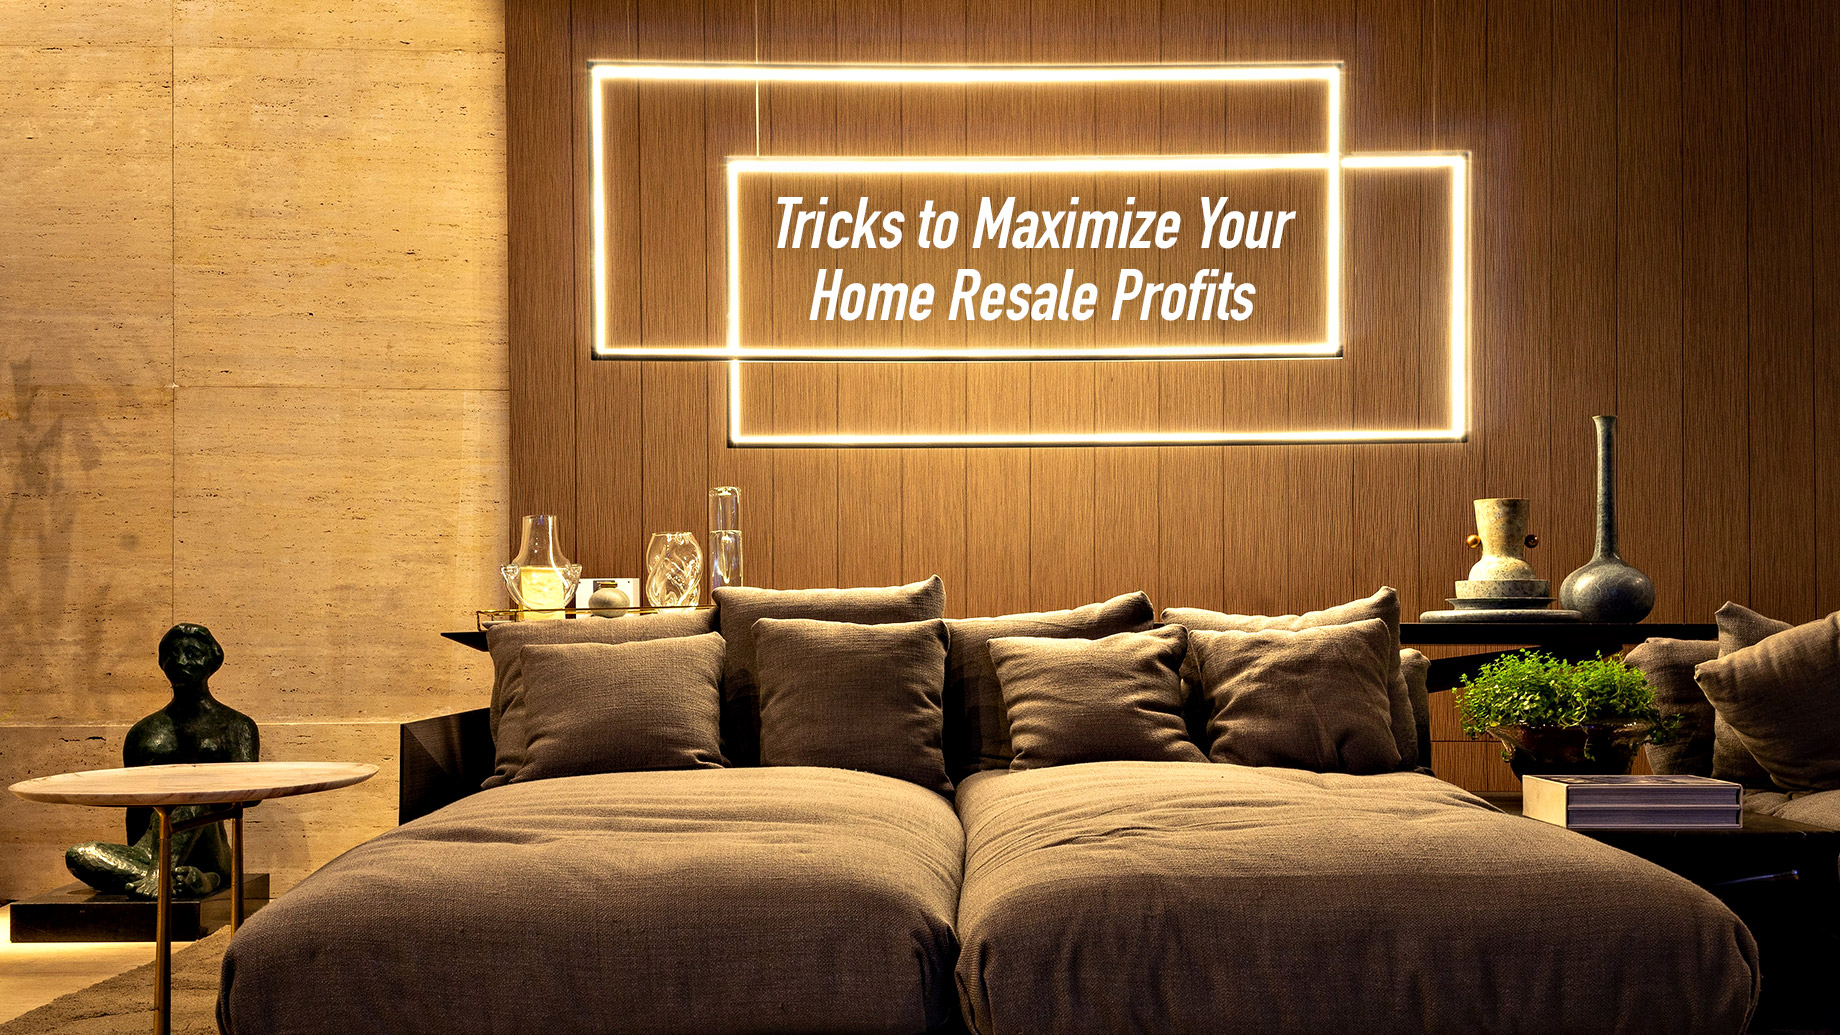 Tricks to Maximize Your Home Resale Profits